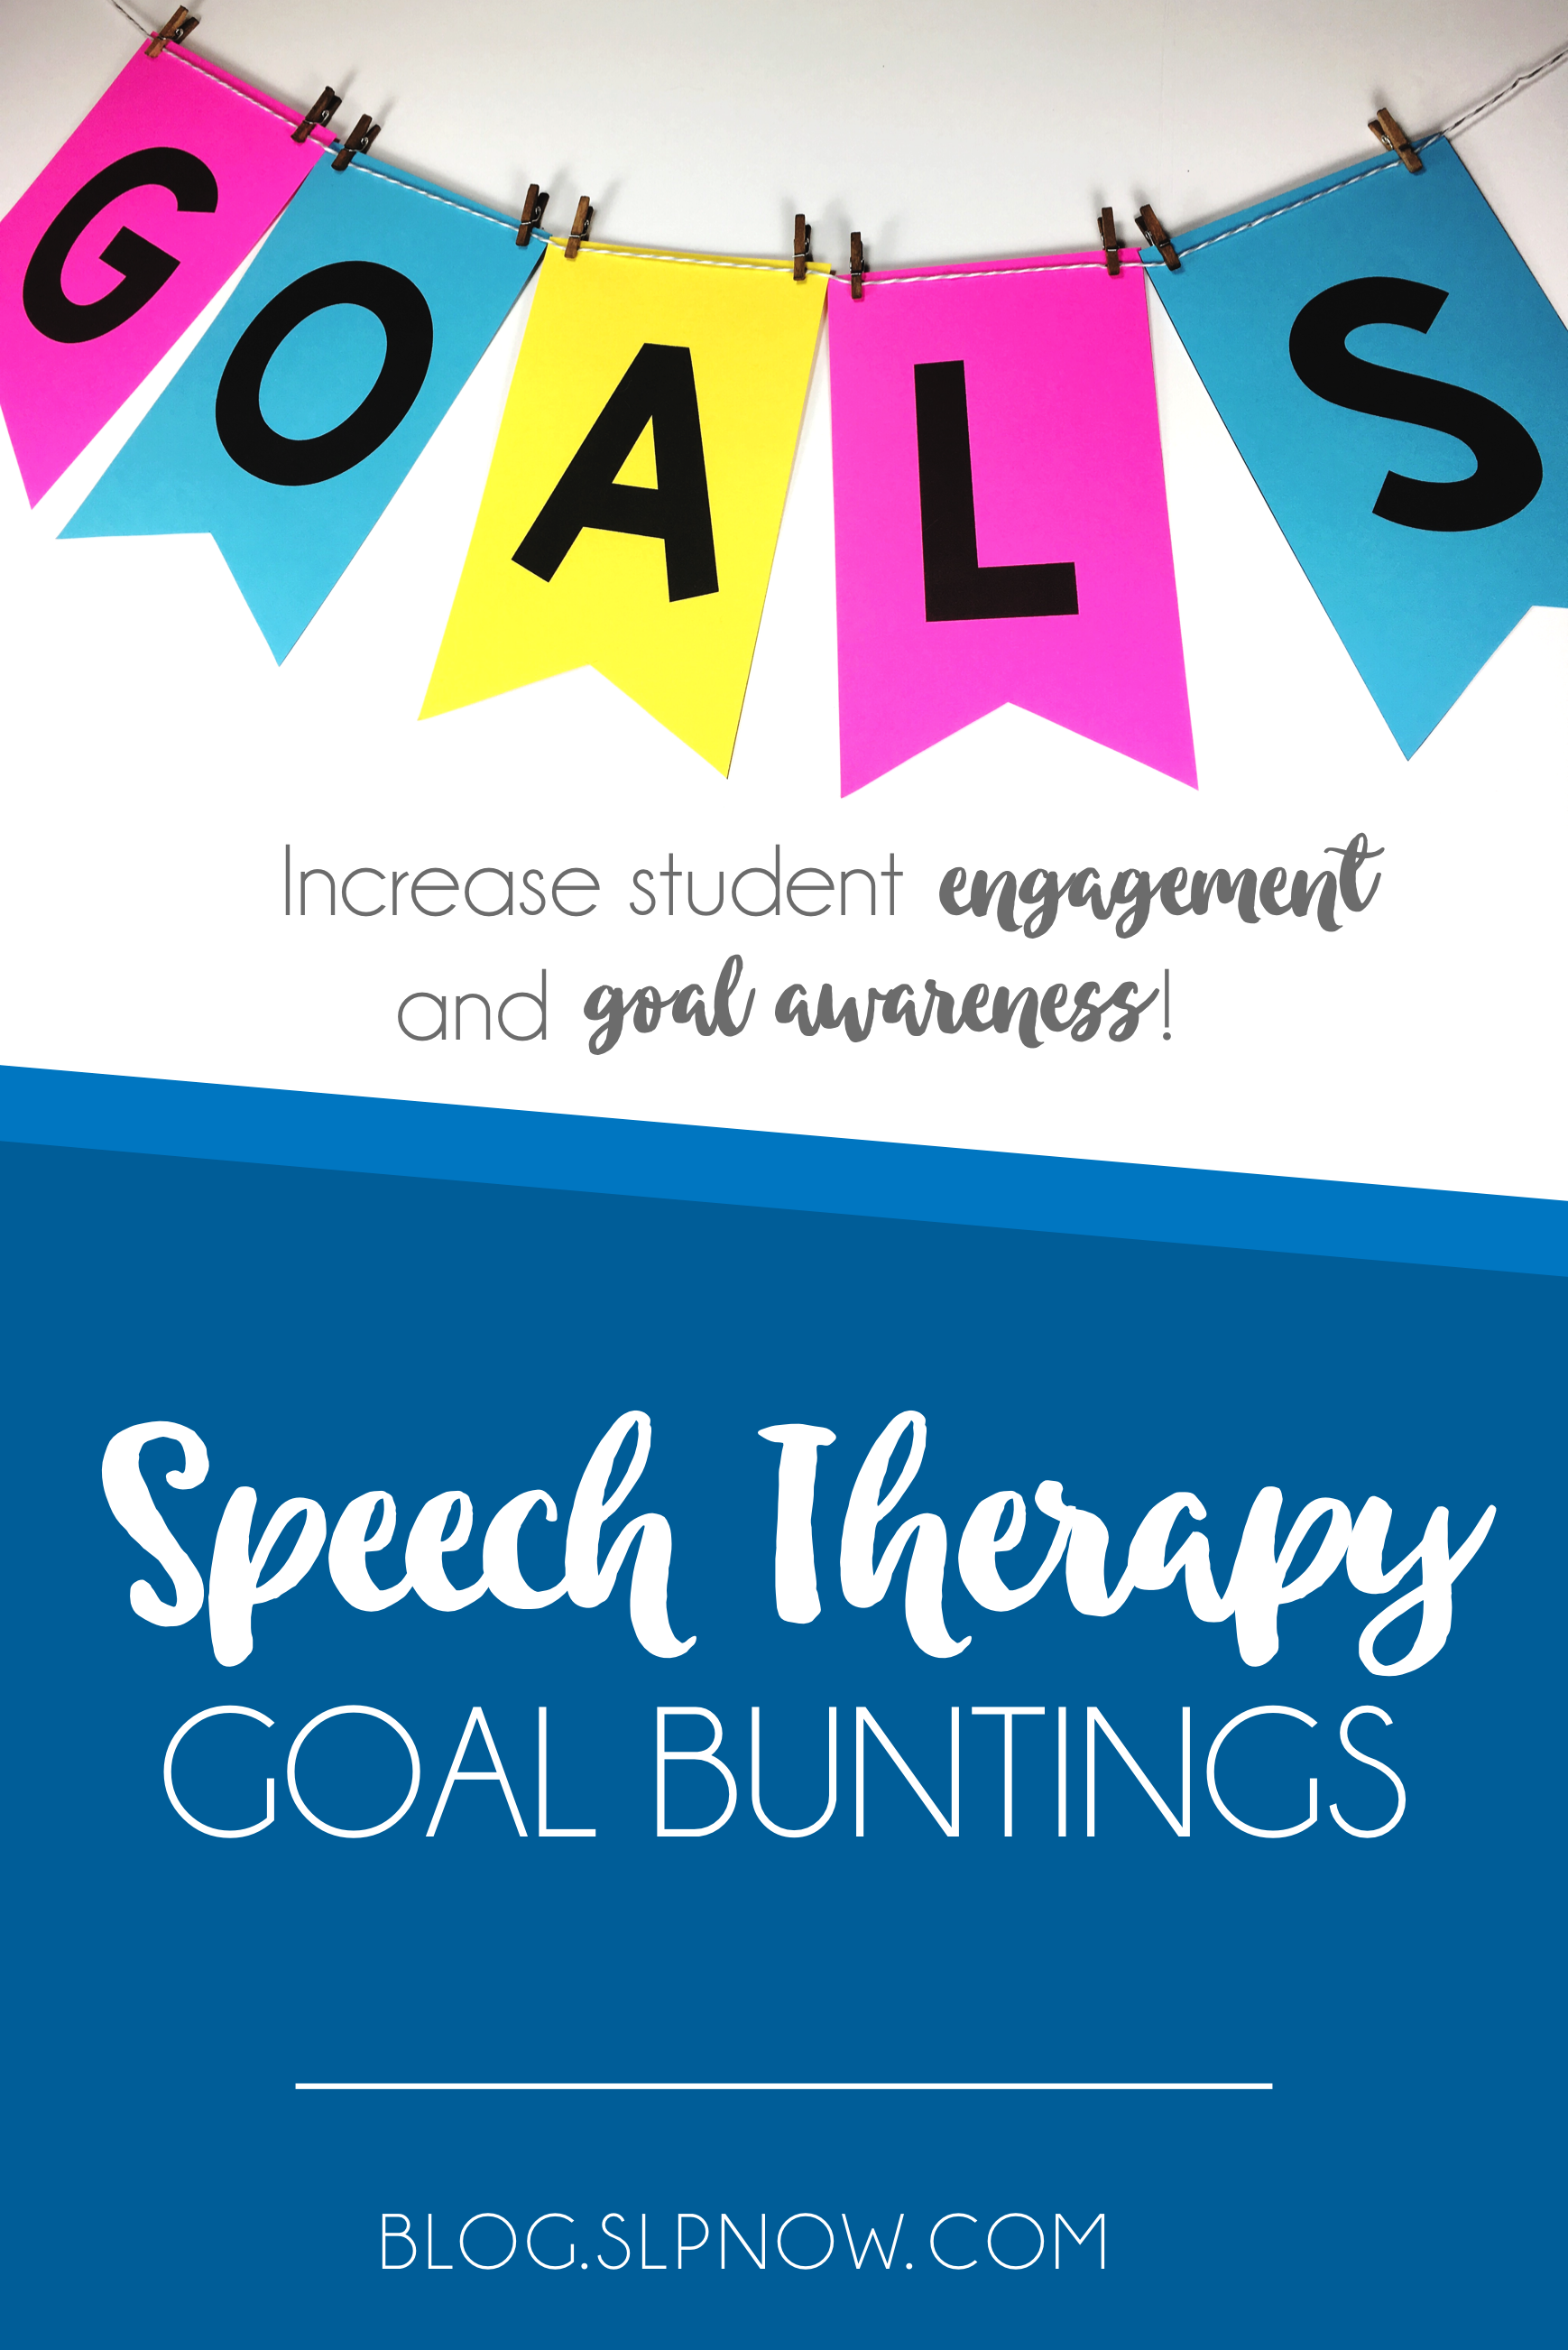 We want students to be invested in their goals, obviously. This short post describes exactly want I did to increase students' goal awareness and to make them feel not only more excited about their goals but also more responsible and accountable for them. Read the details inside!